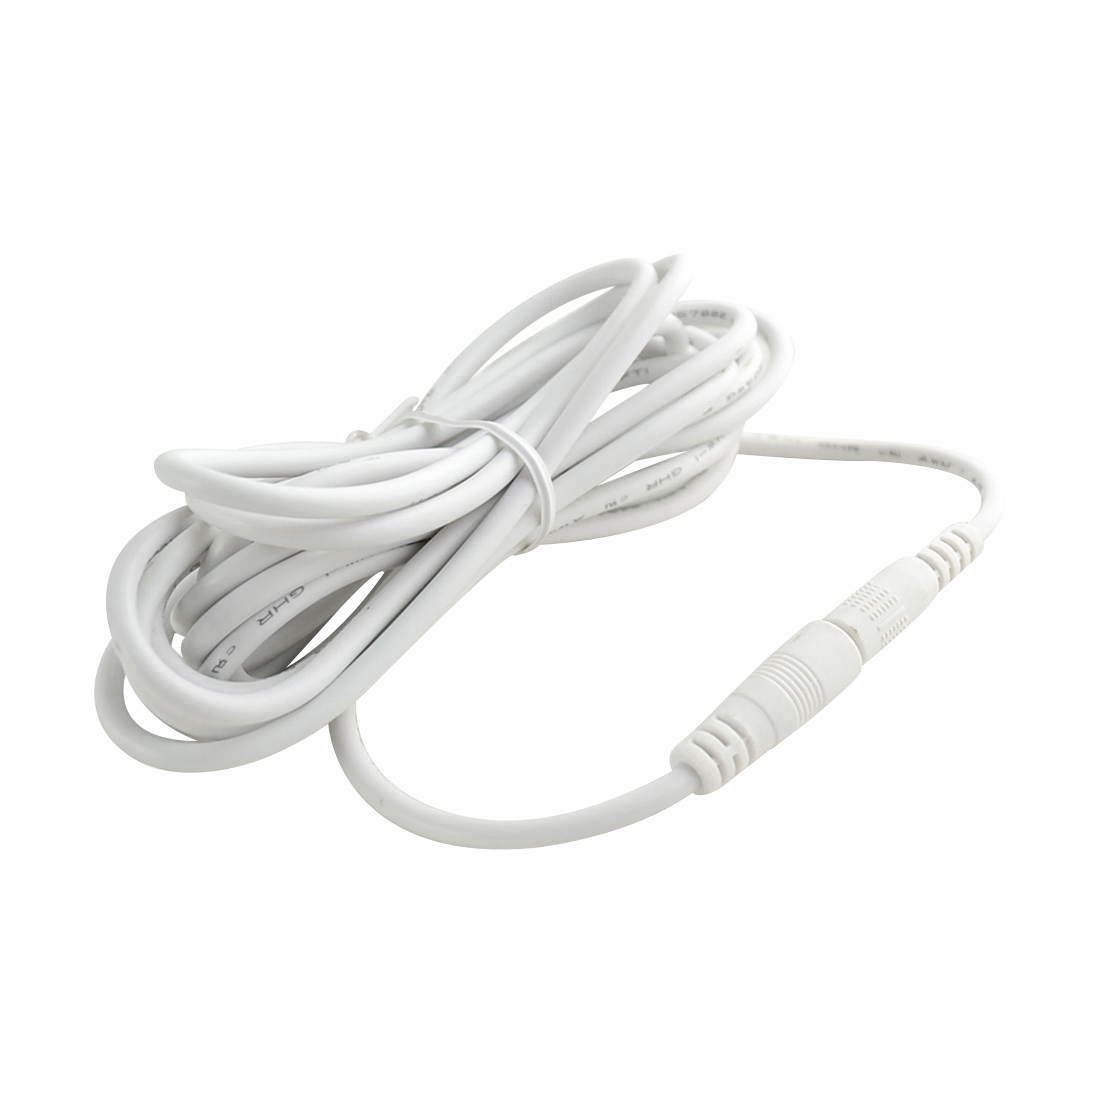 Power Cord Extension : Foot m ip camera power adapter extension cable